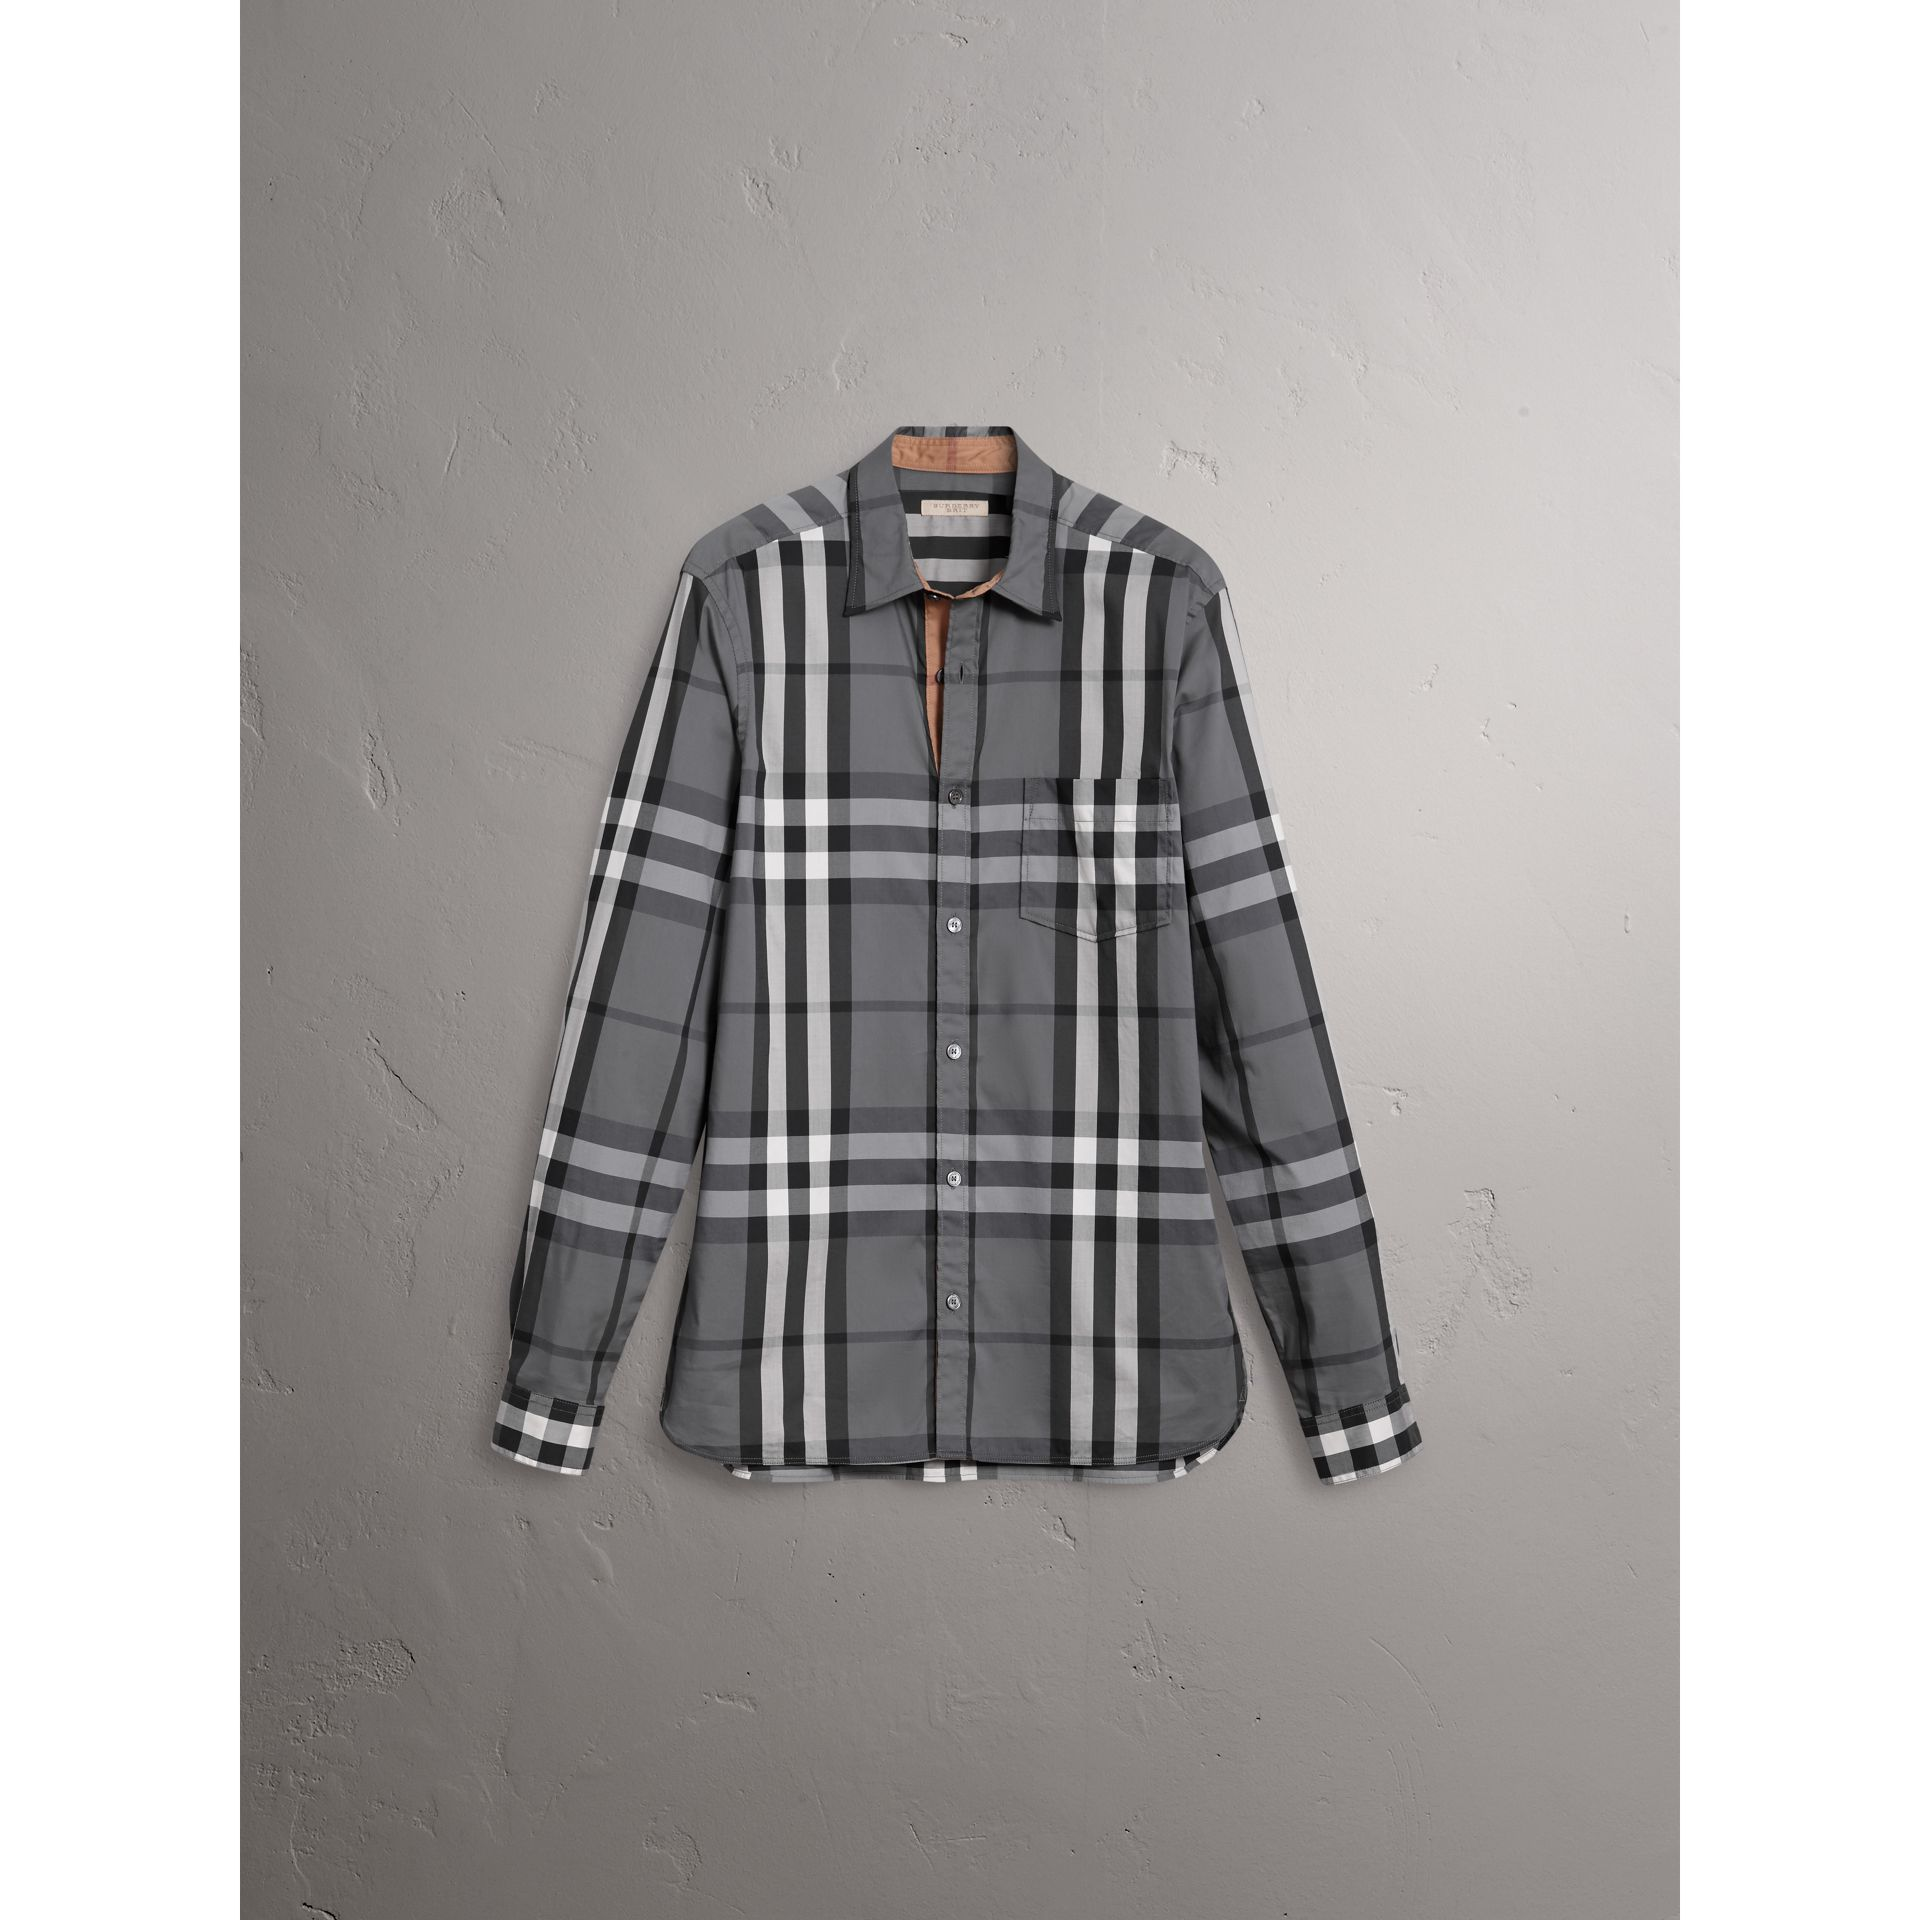 Chemise en coton extensible à motif check (Anthracite) - Homme | Burberry - photo de la galerie 4